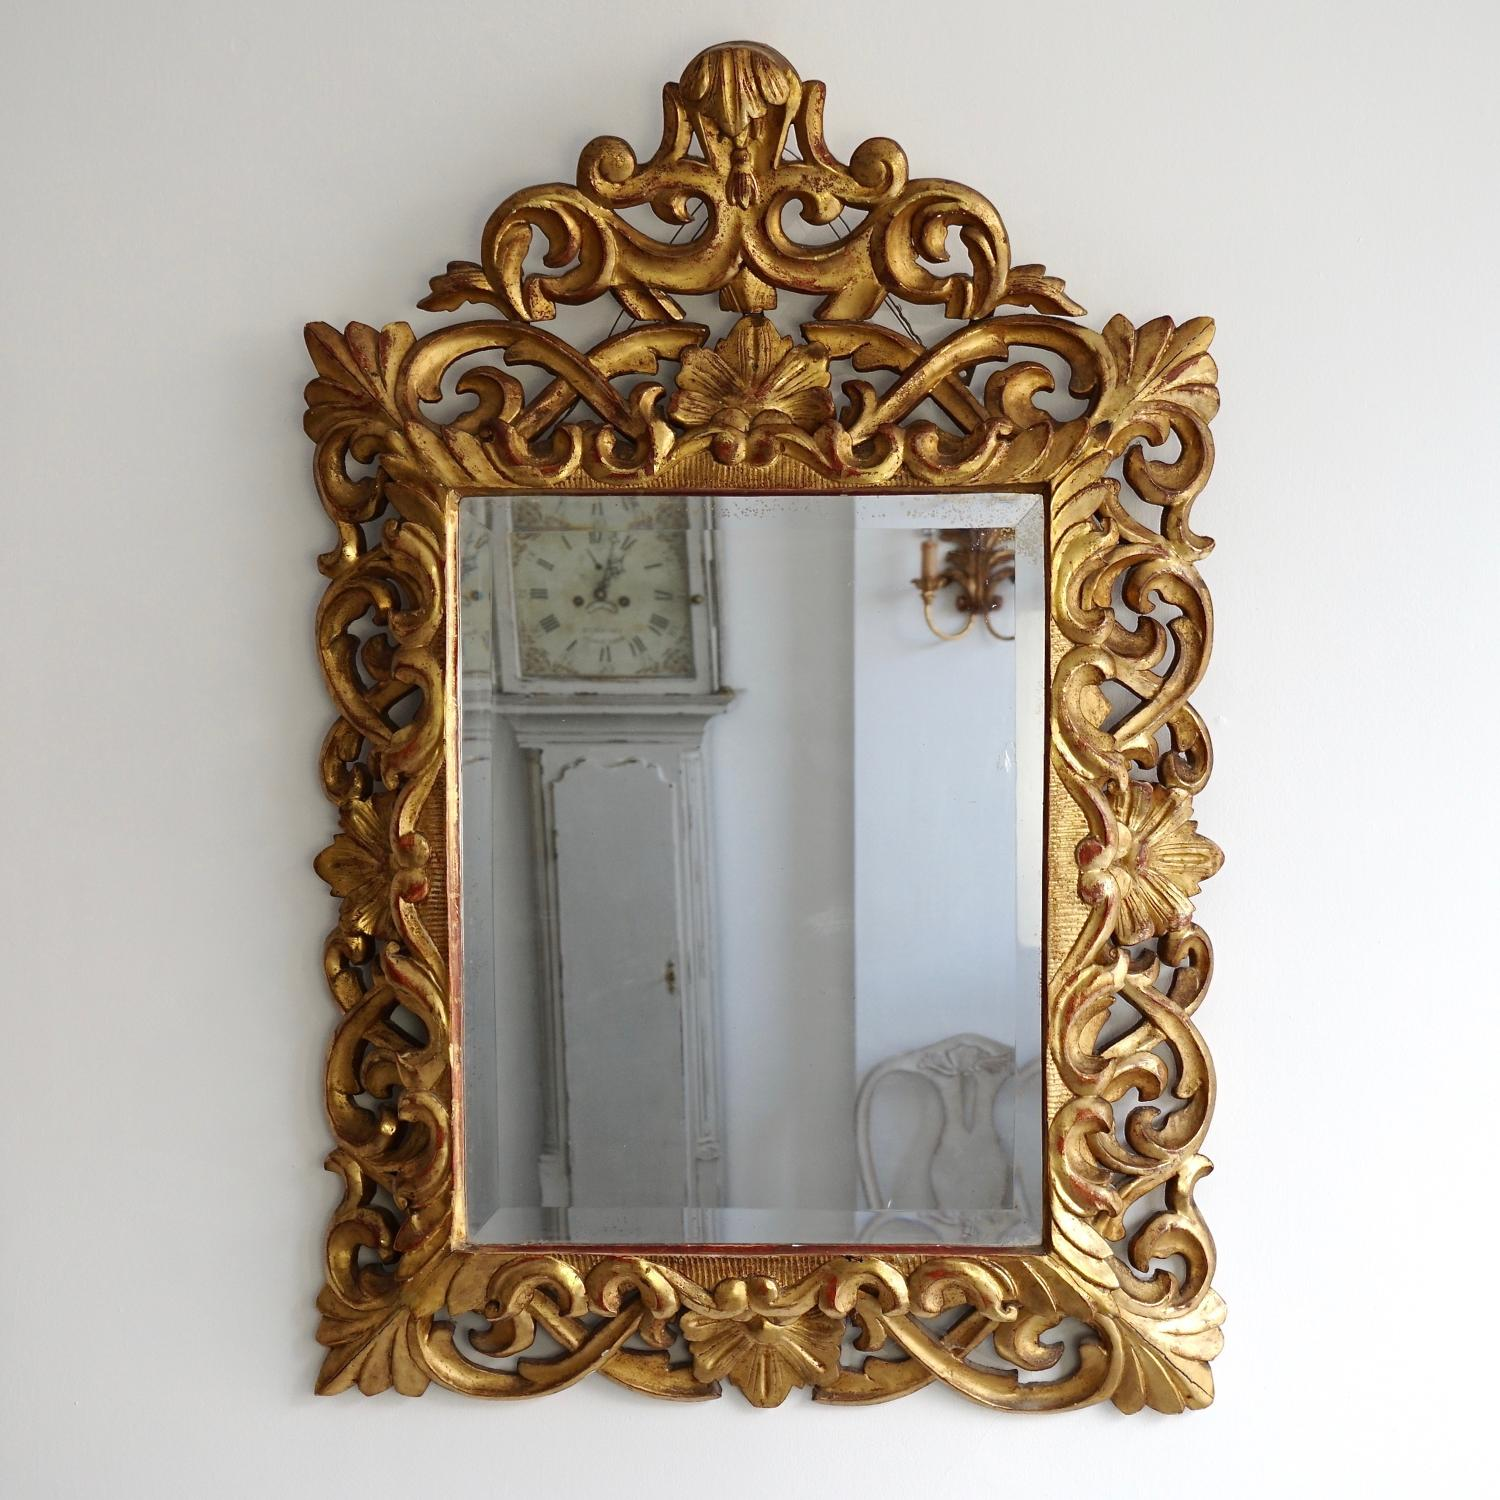 WONDERFUL 19th CENTURY FLORENTINE MIRROR